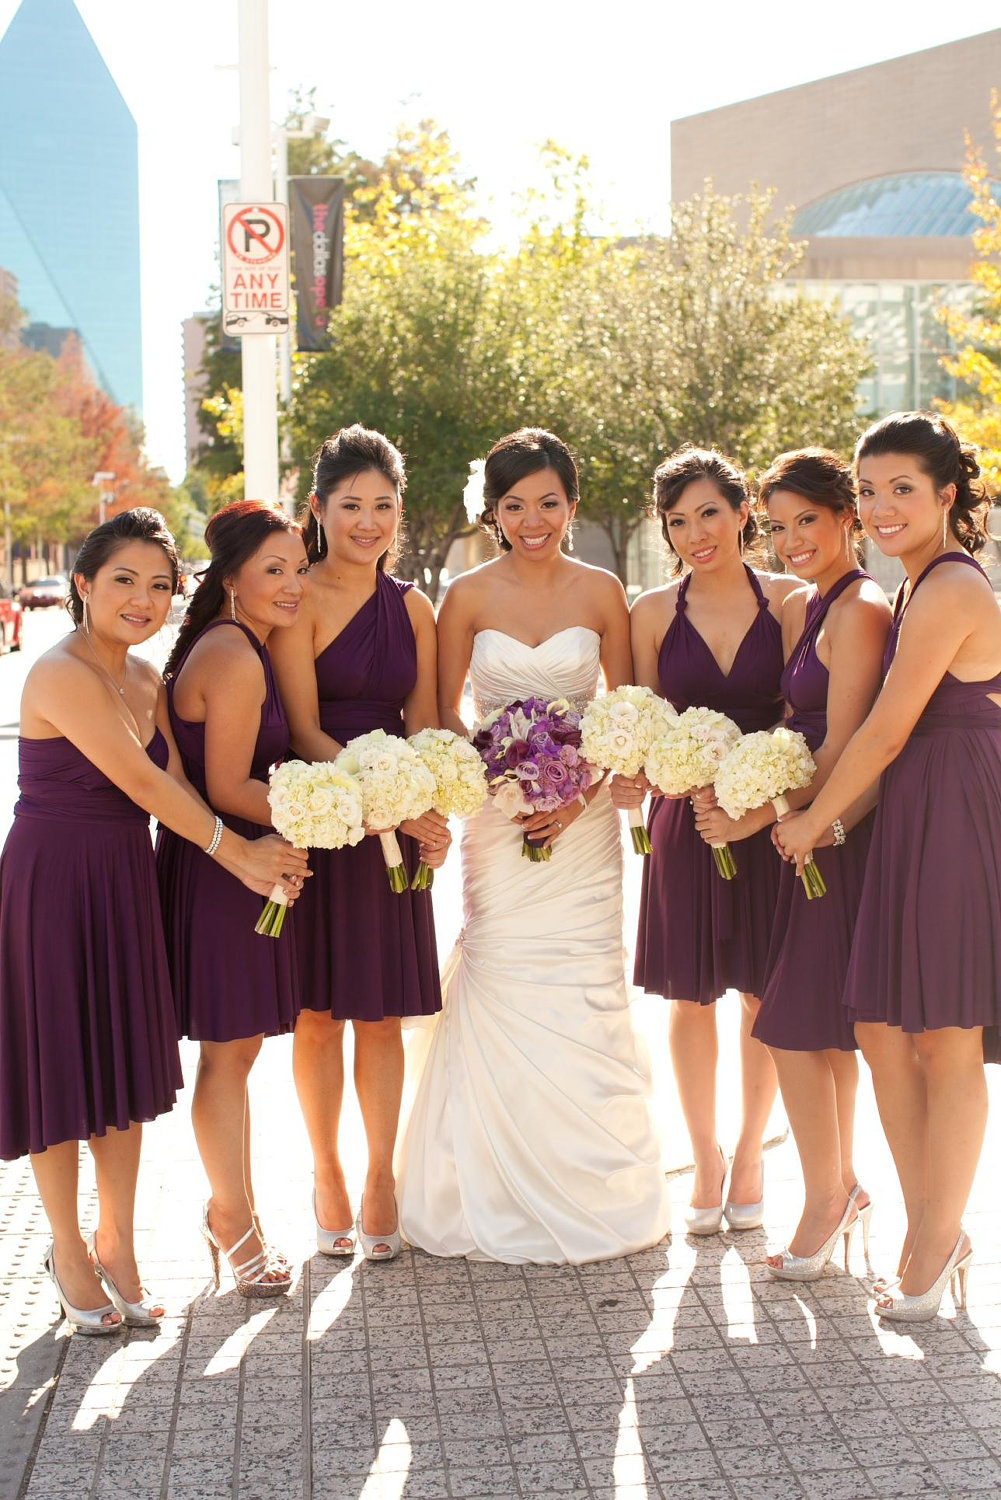 purple bridesmaid convertible dress | via http://emmalinebride.com/bridesmaids/bridesmaid-dress-worn-different-ways/